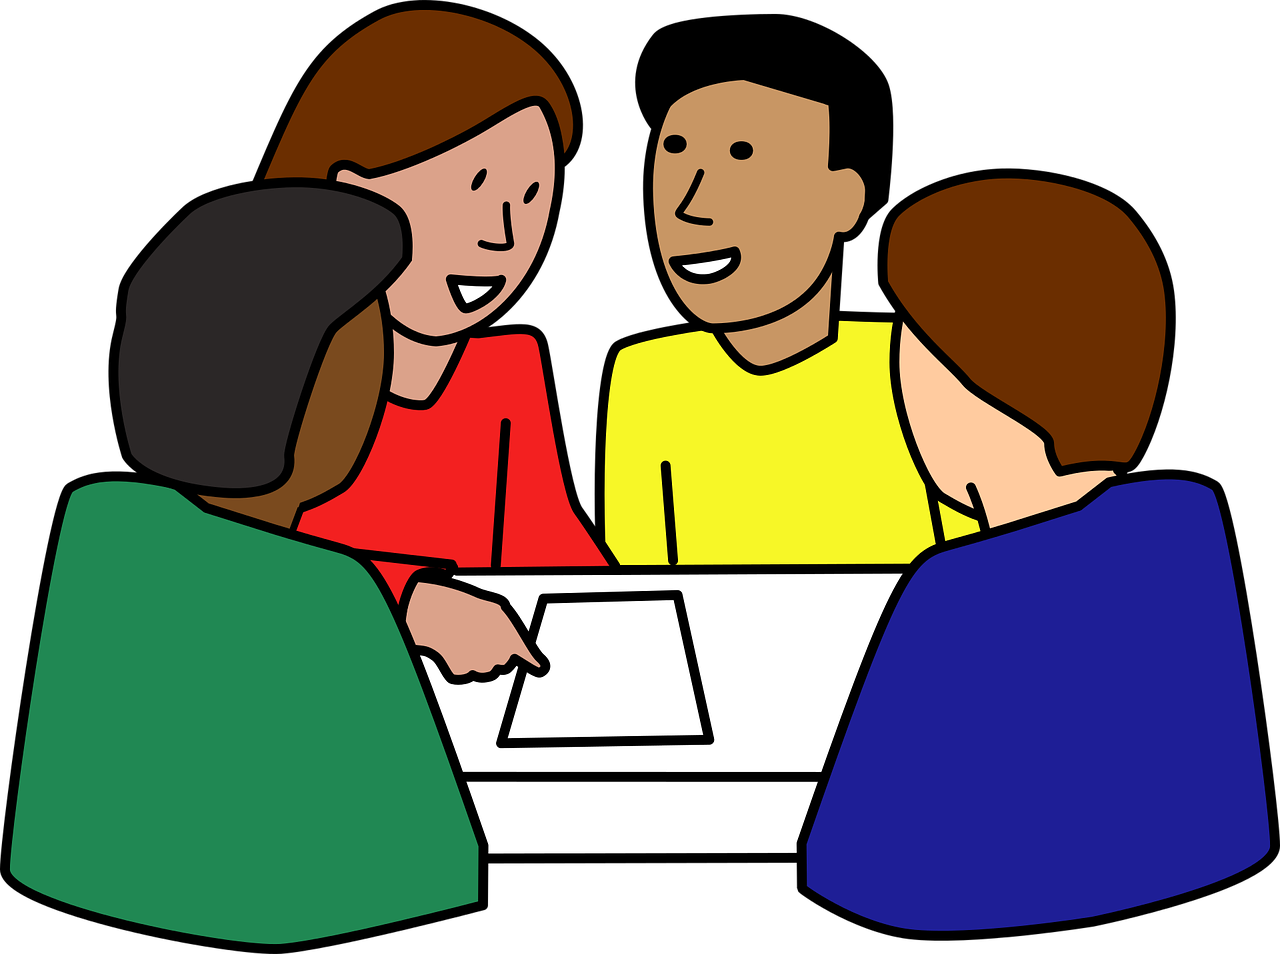 Small group discussions clipart jpg freeuse library Discussion clipart small group, Discussion small group ... jpg freeuse library